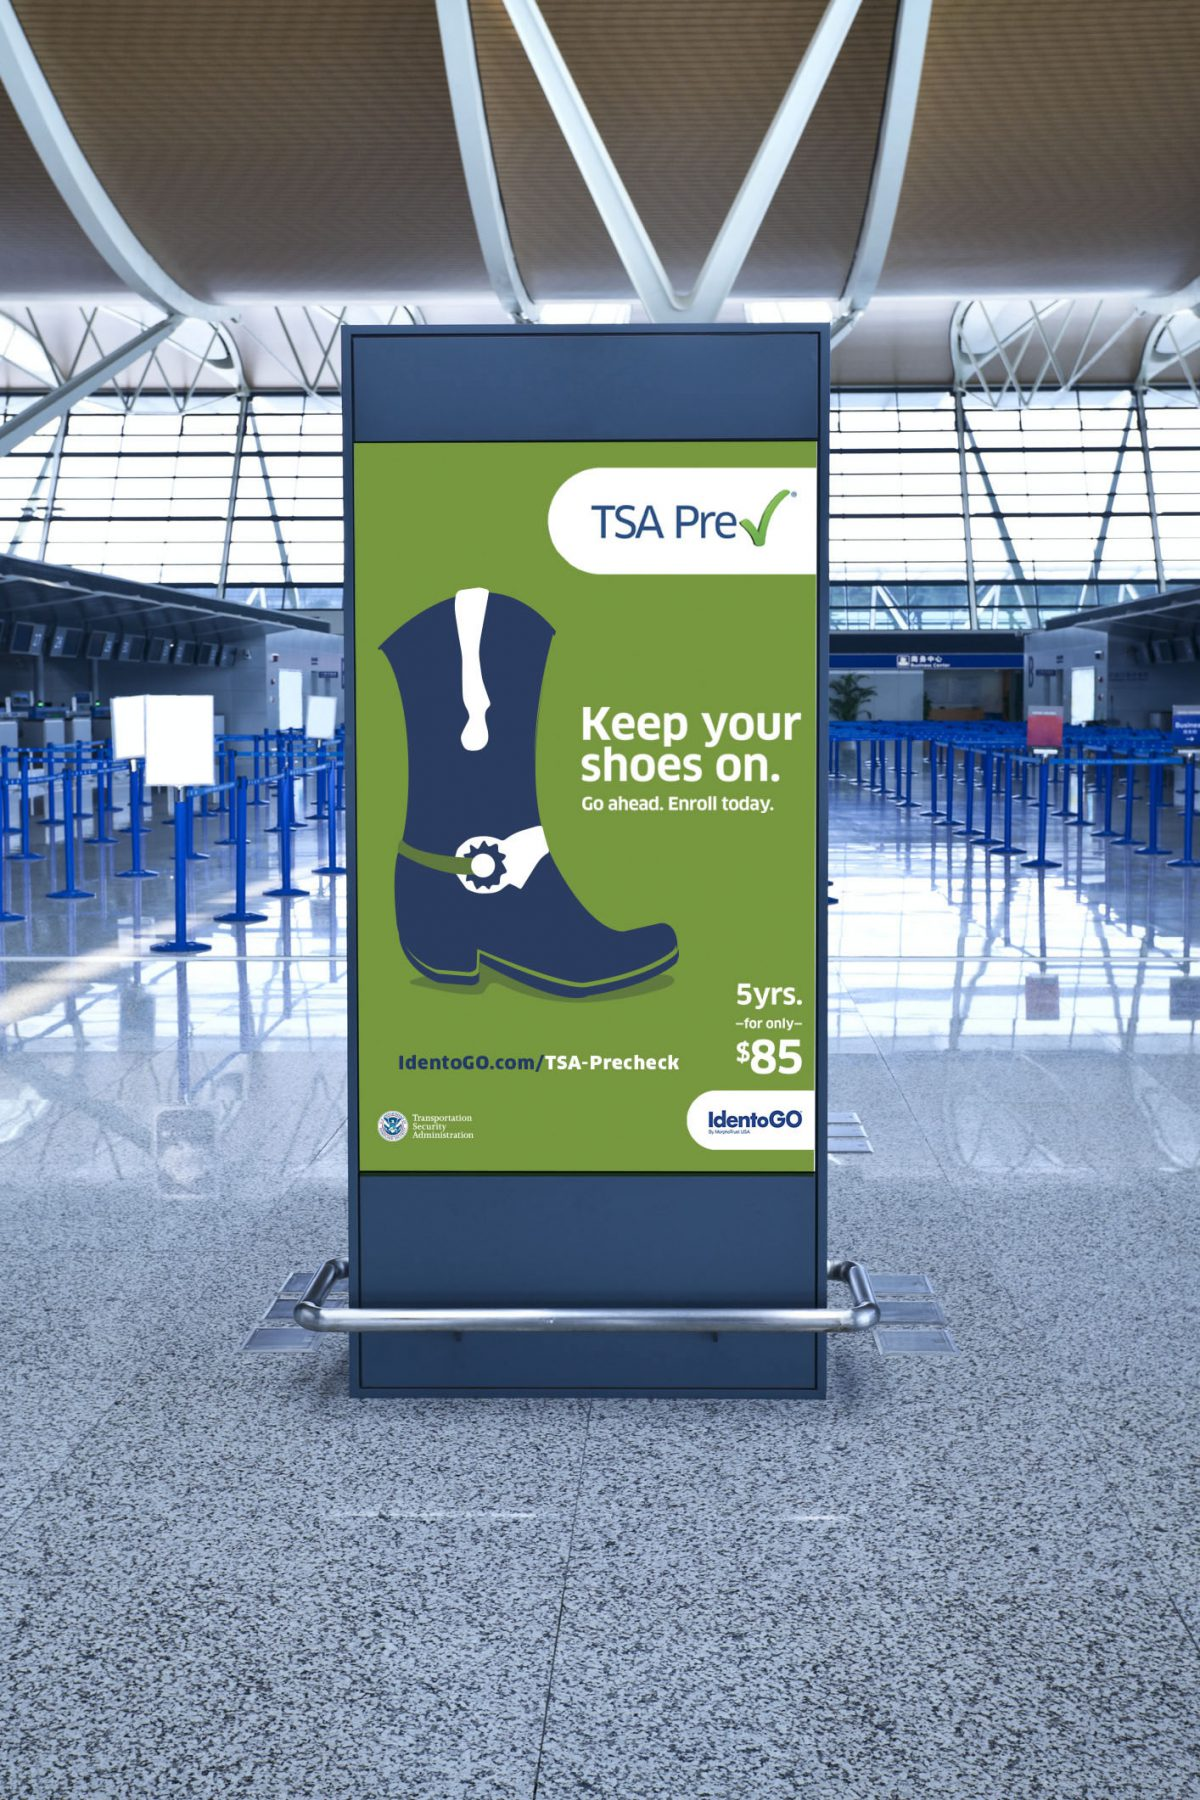 Keep Your Shoes On Texas Airport Banner for TSAPre-check using a cowboy boot